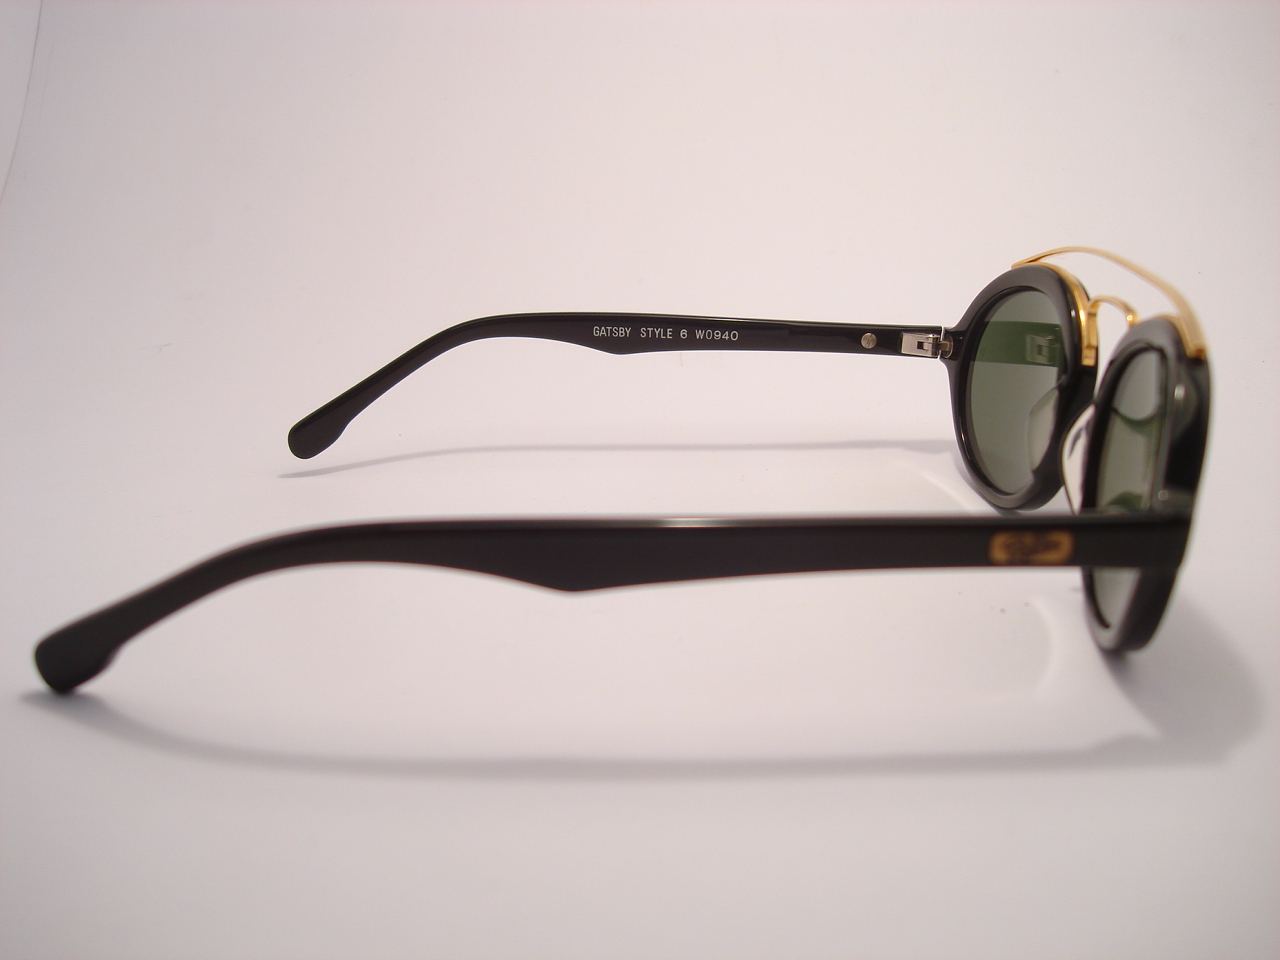 Theothersideofthepillow: Vintage RAY BAN By BAUSCH & LOMB